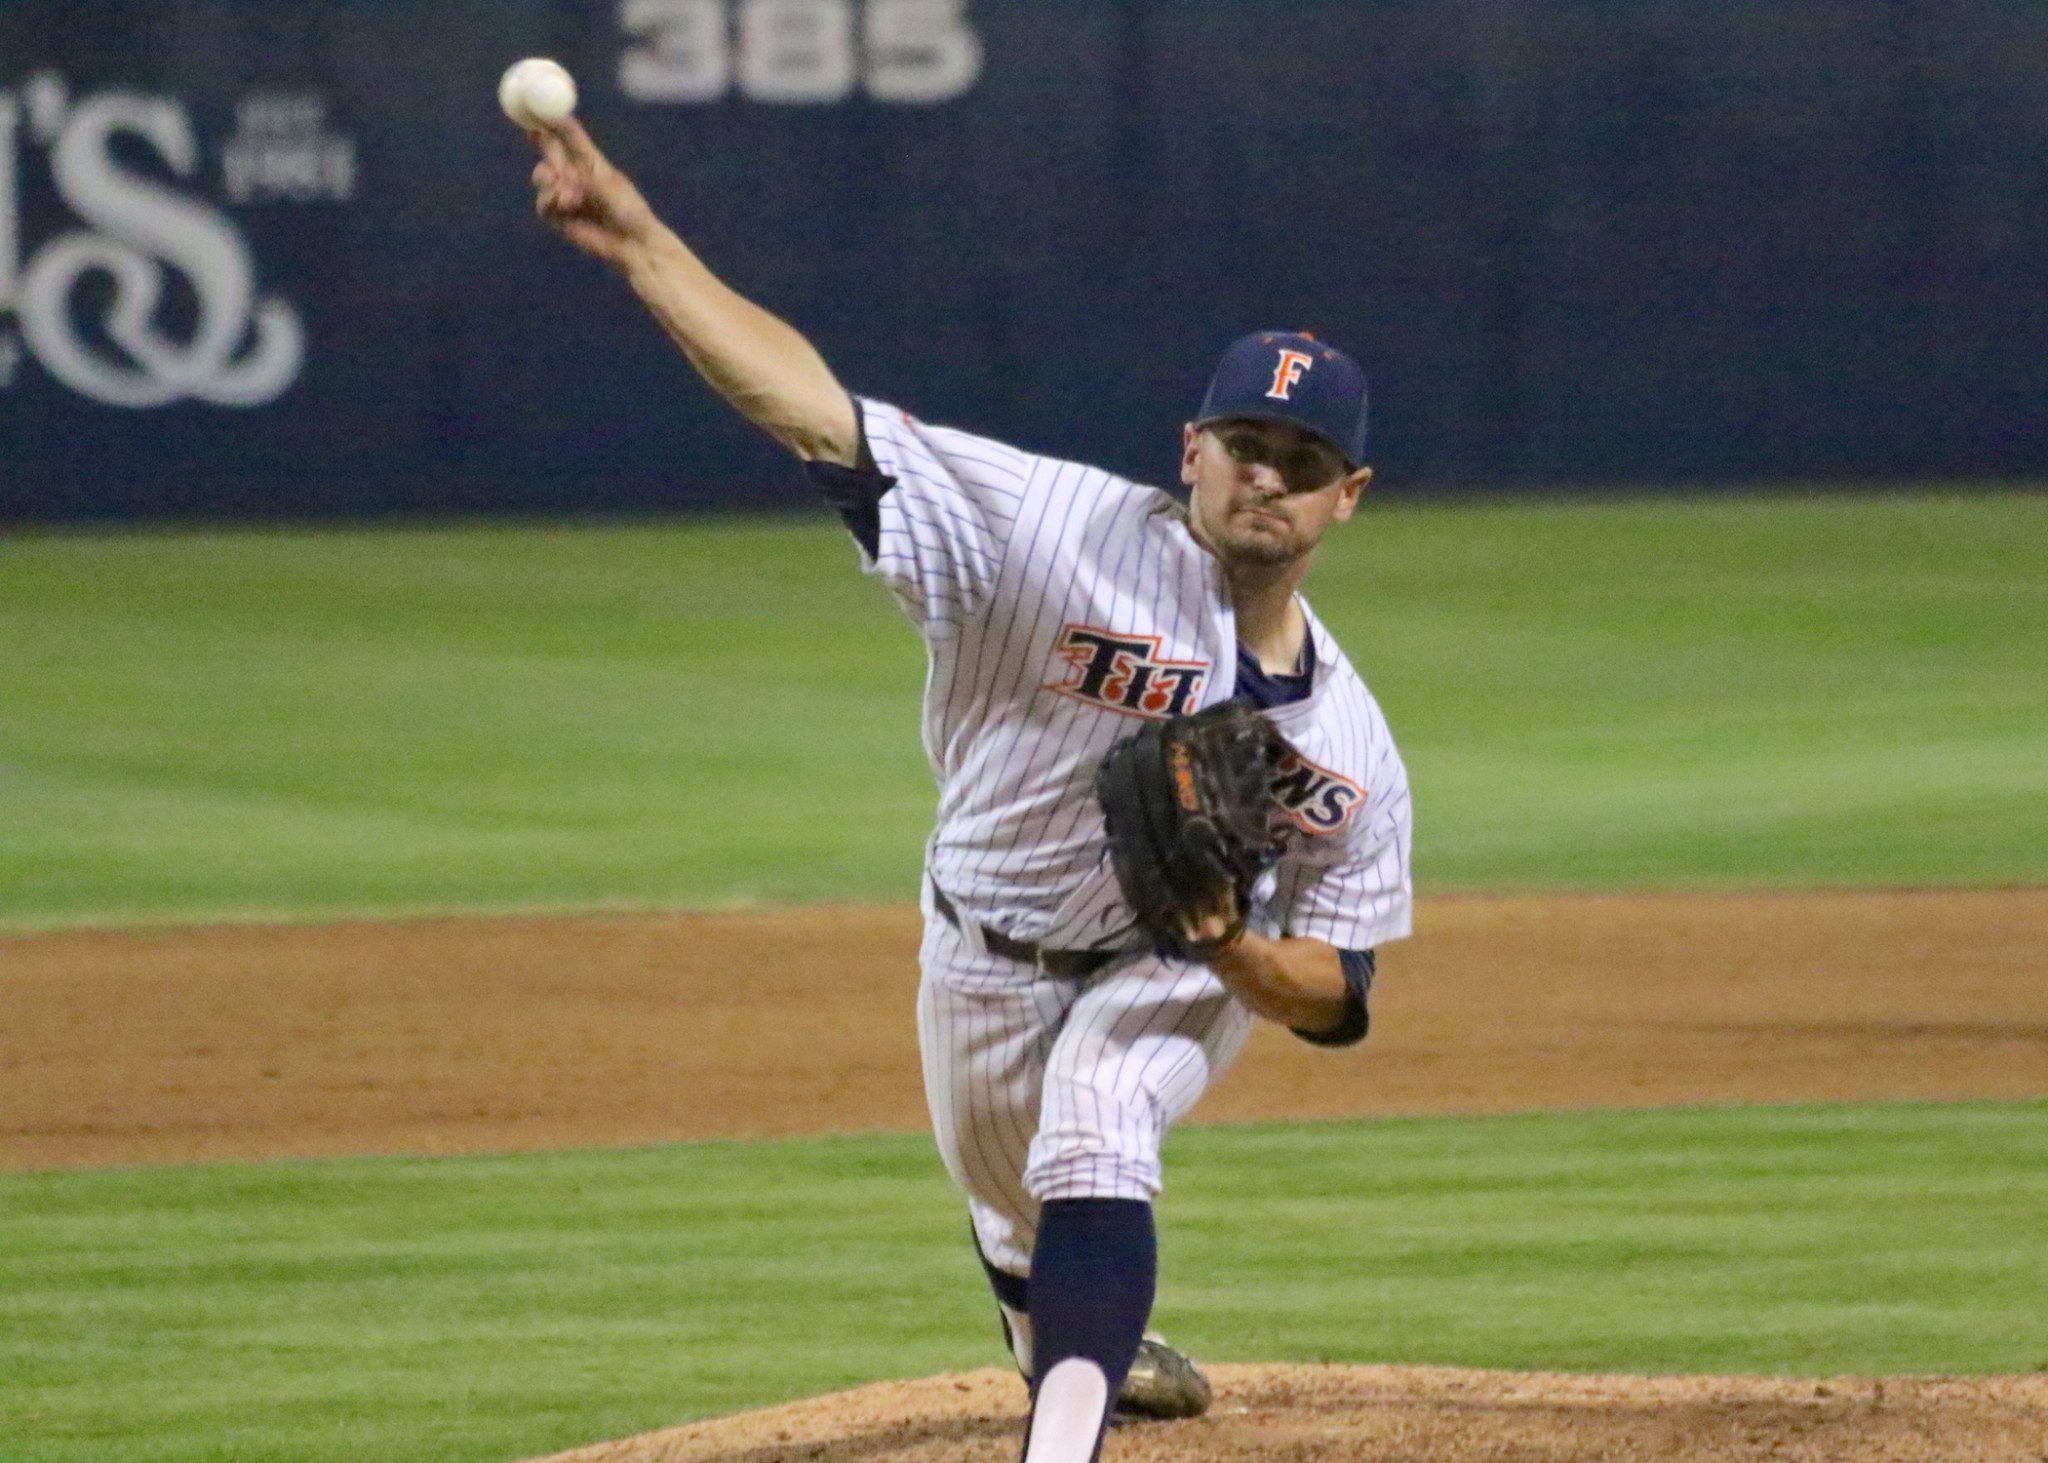 Miles Chambers, Cal State Fullerton - 1